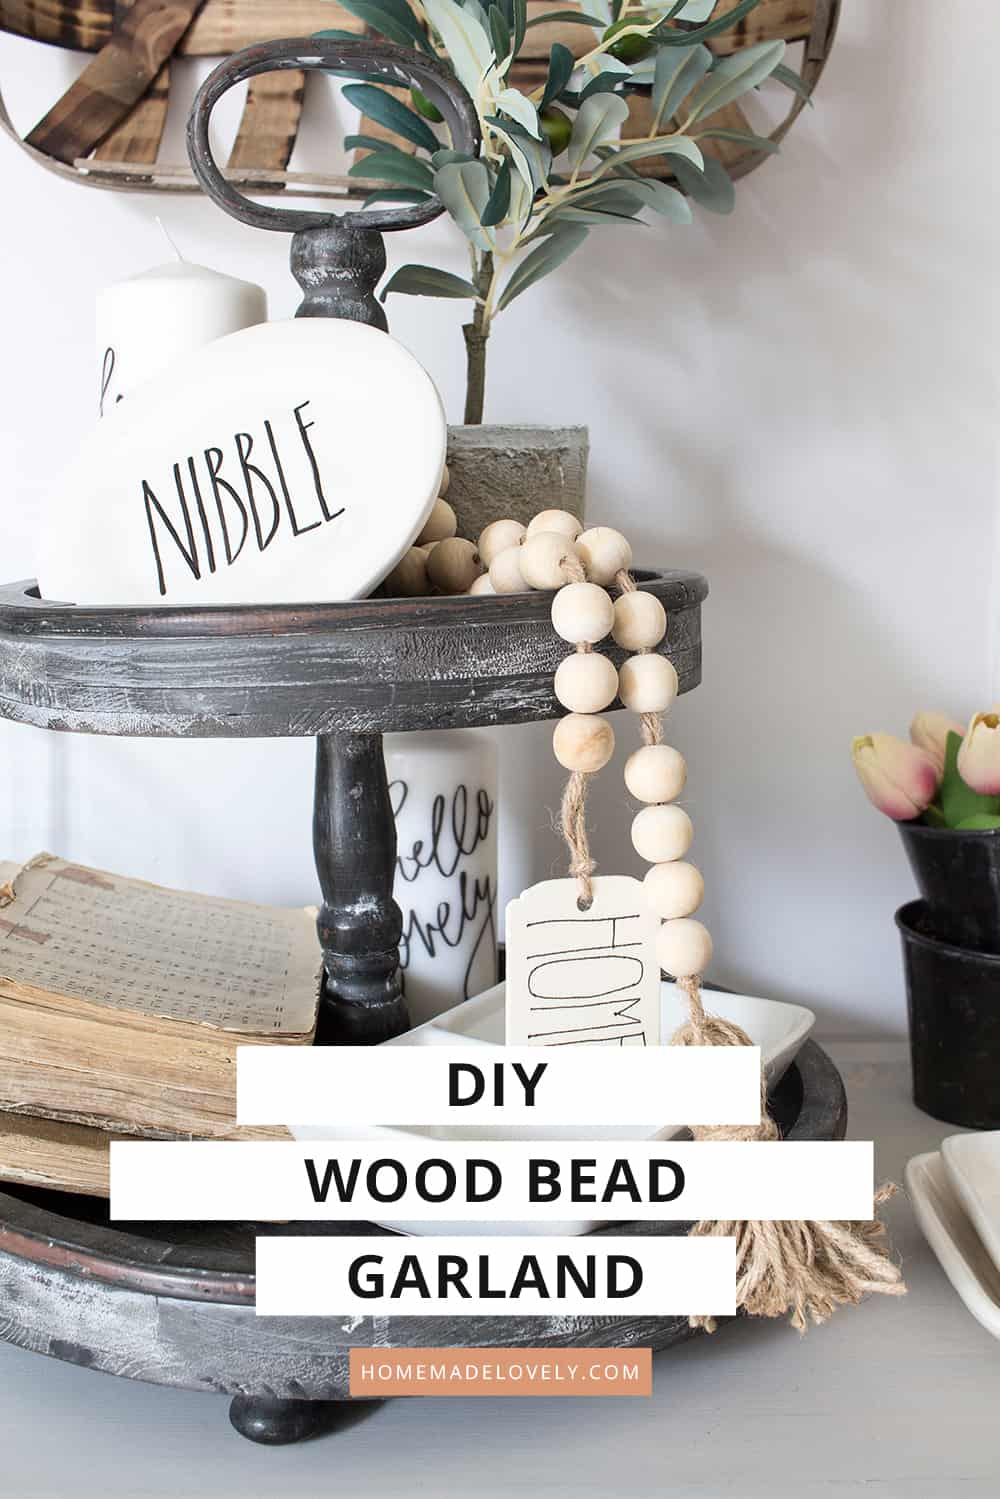 Diy Wood Bead Garland With Tassels Tag Perfect For Boho Or Farmhouse Decor